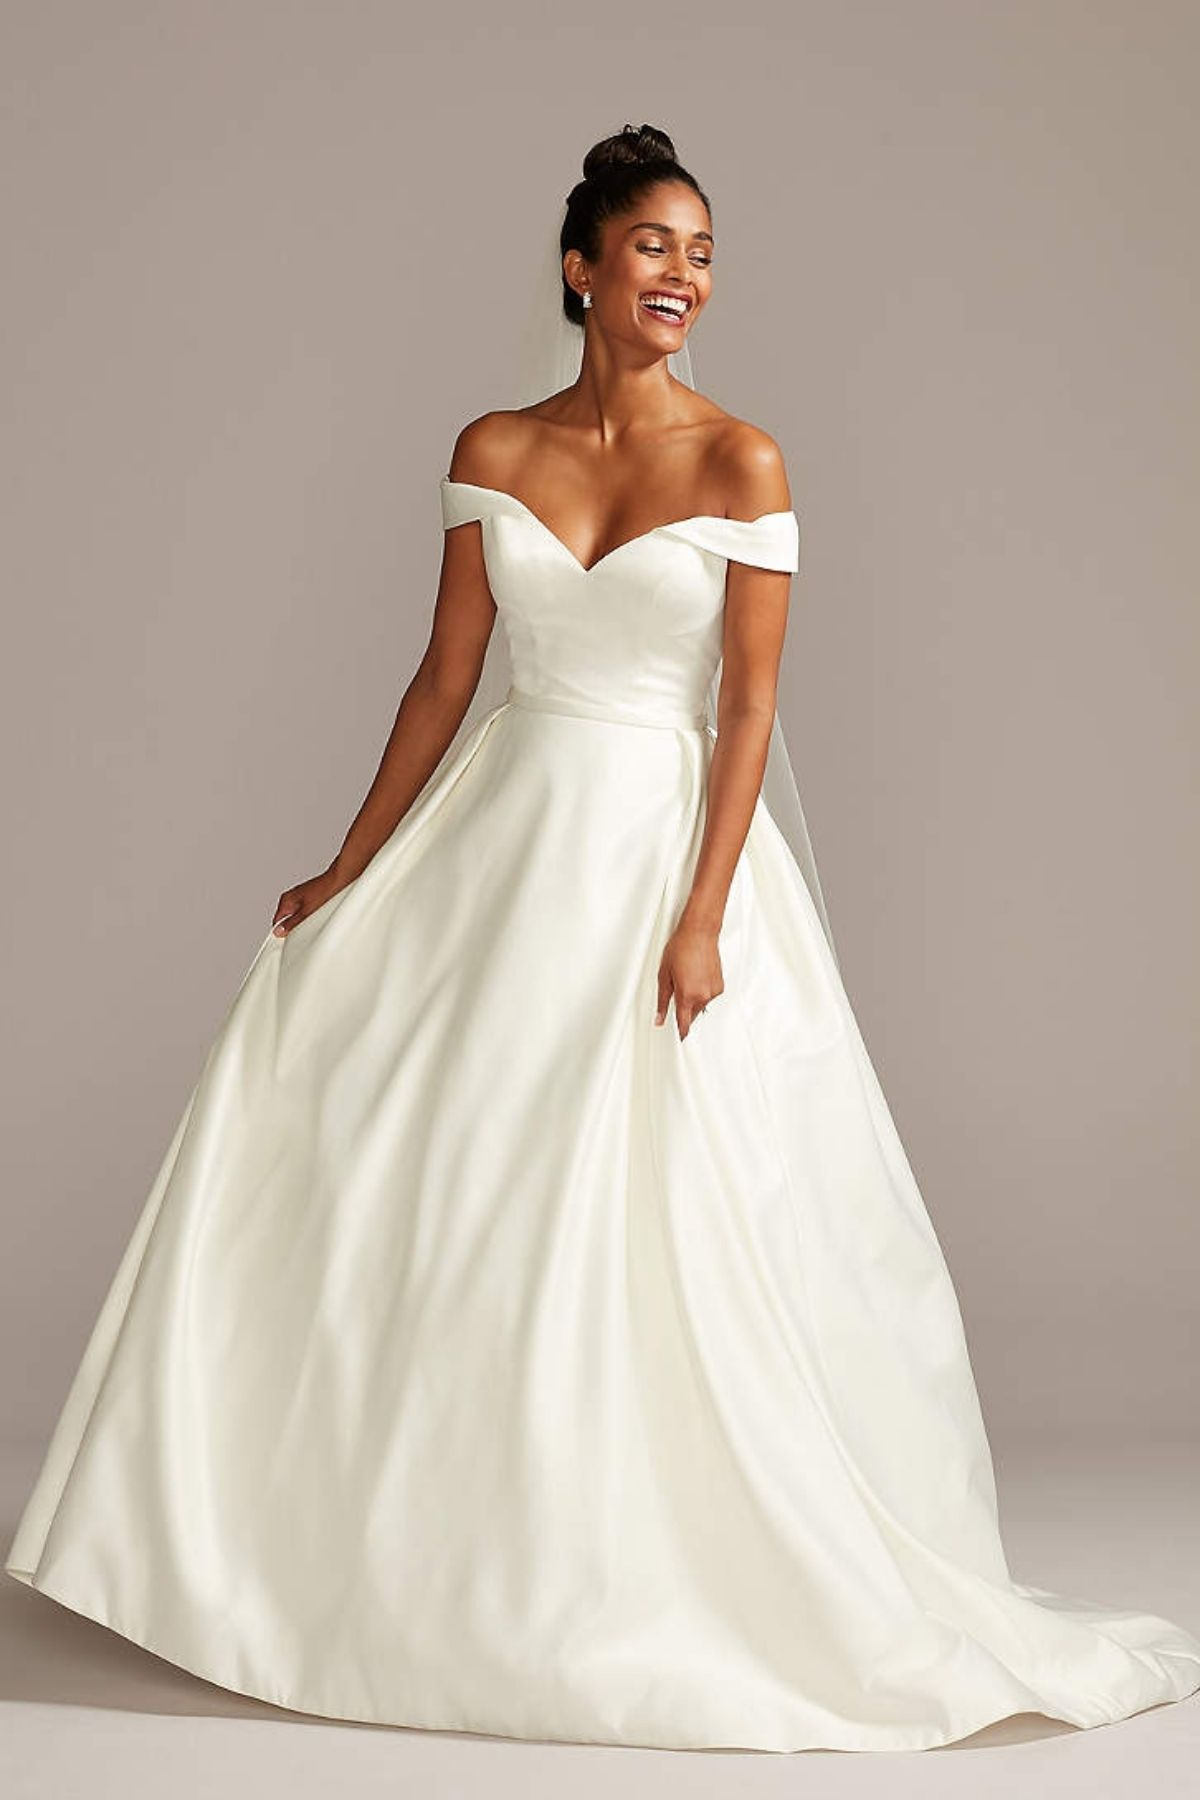 3. Off the Shoulder Satin Ball Gown Wedding Dress - Ballgown style bridal dresses under $800: Top 10 from David's Bridal